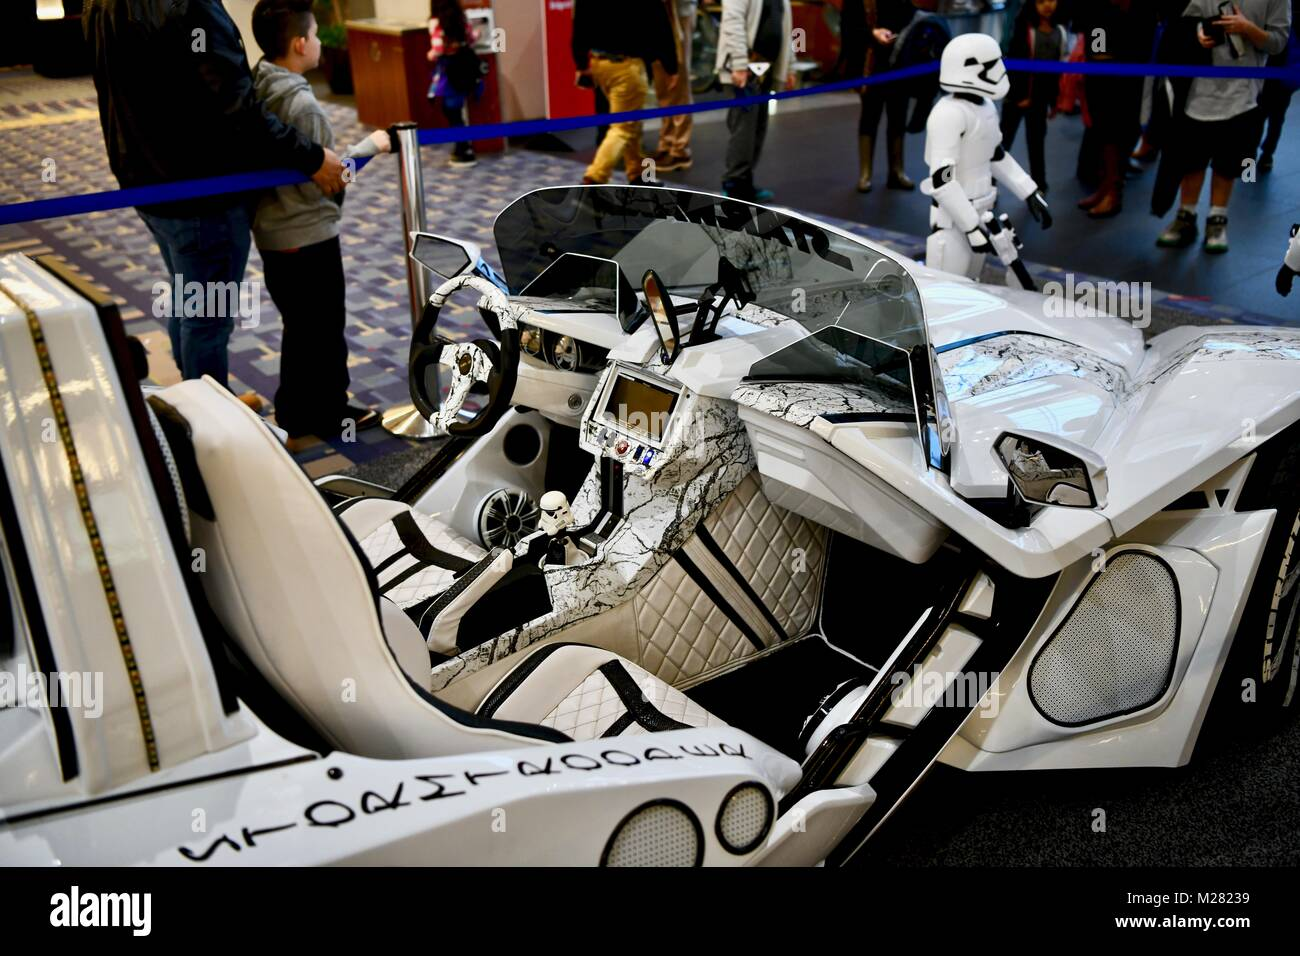 custom star wars car stock photos custom star wars car stock images alamy. Black Bedroom Furniture Sets. Home Design Ideas